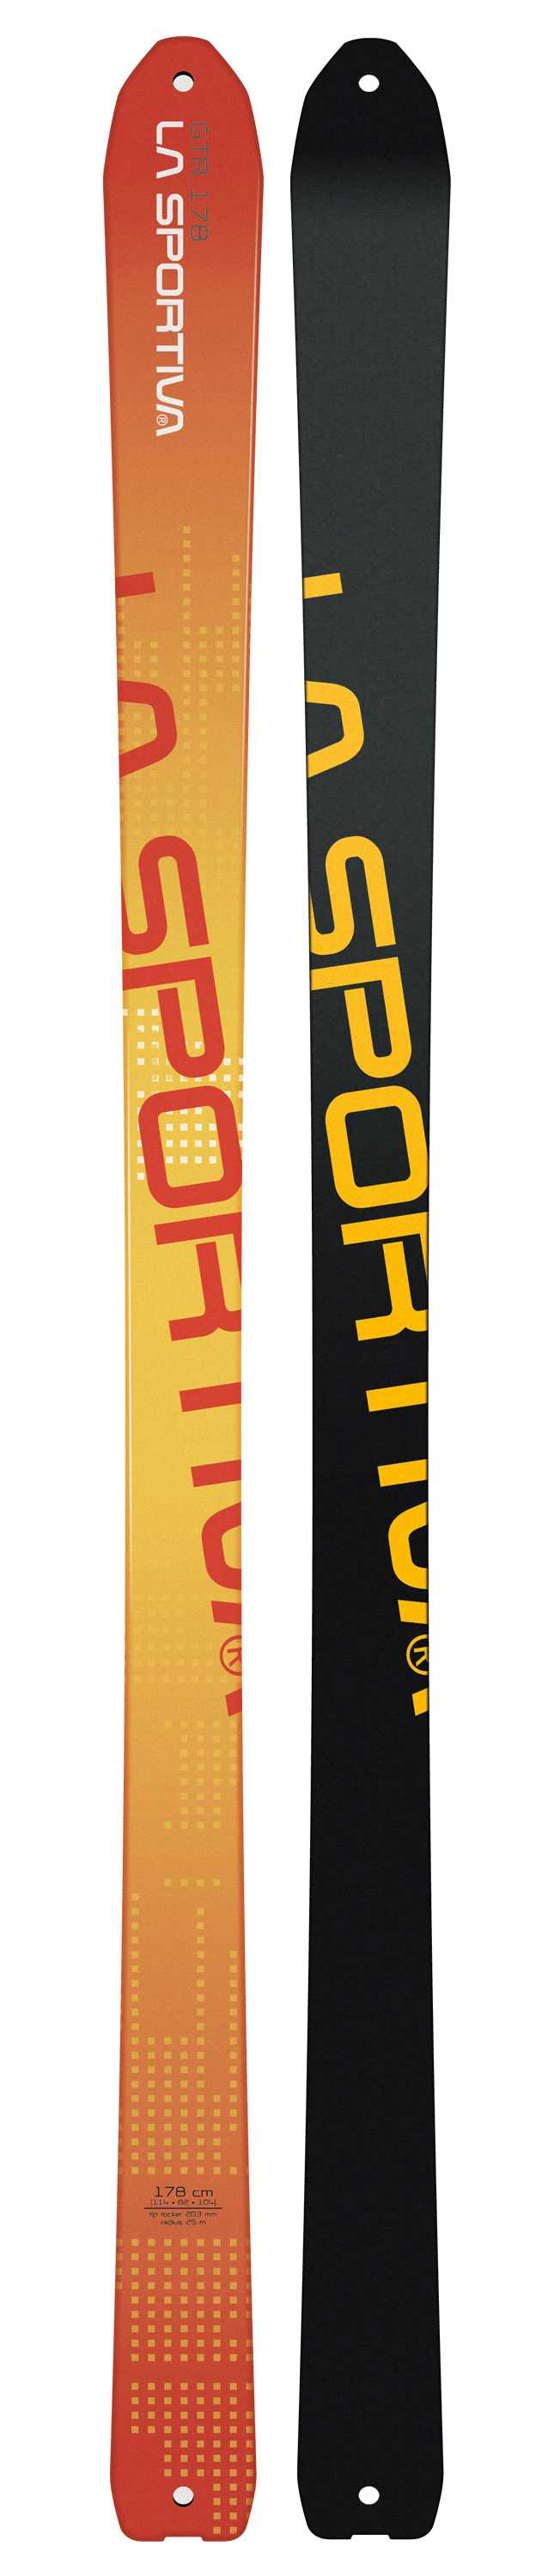 The GTR is a touring-friendly ski that measures 114-82-104, is available in 158, 168, and 178cm lengths and weighs just 1245g in the 168cm length so that it goes up as well as it goes down.